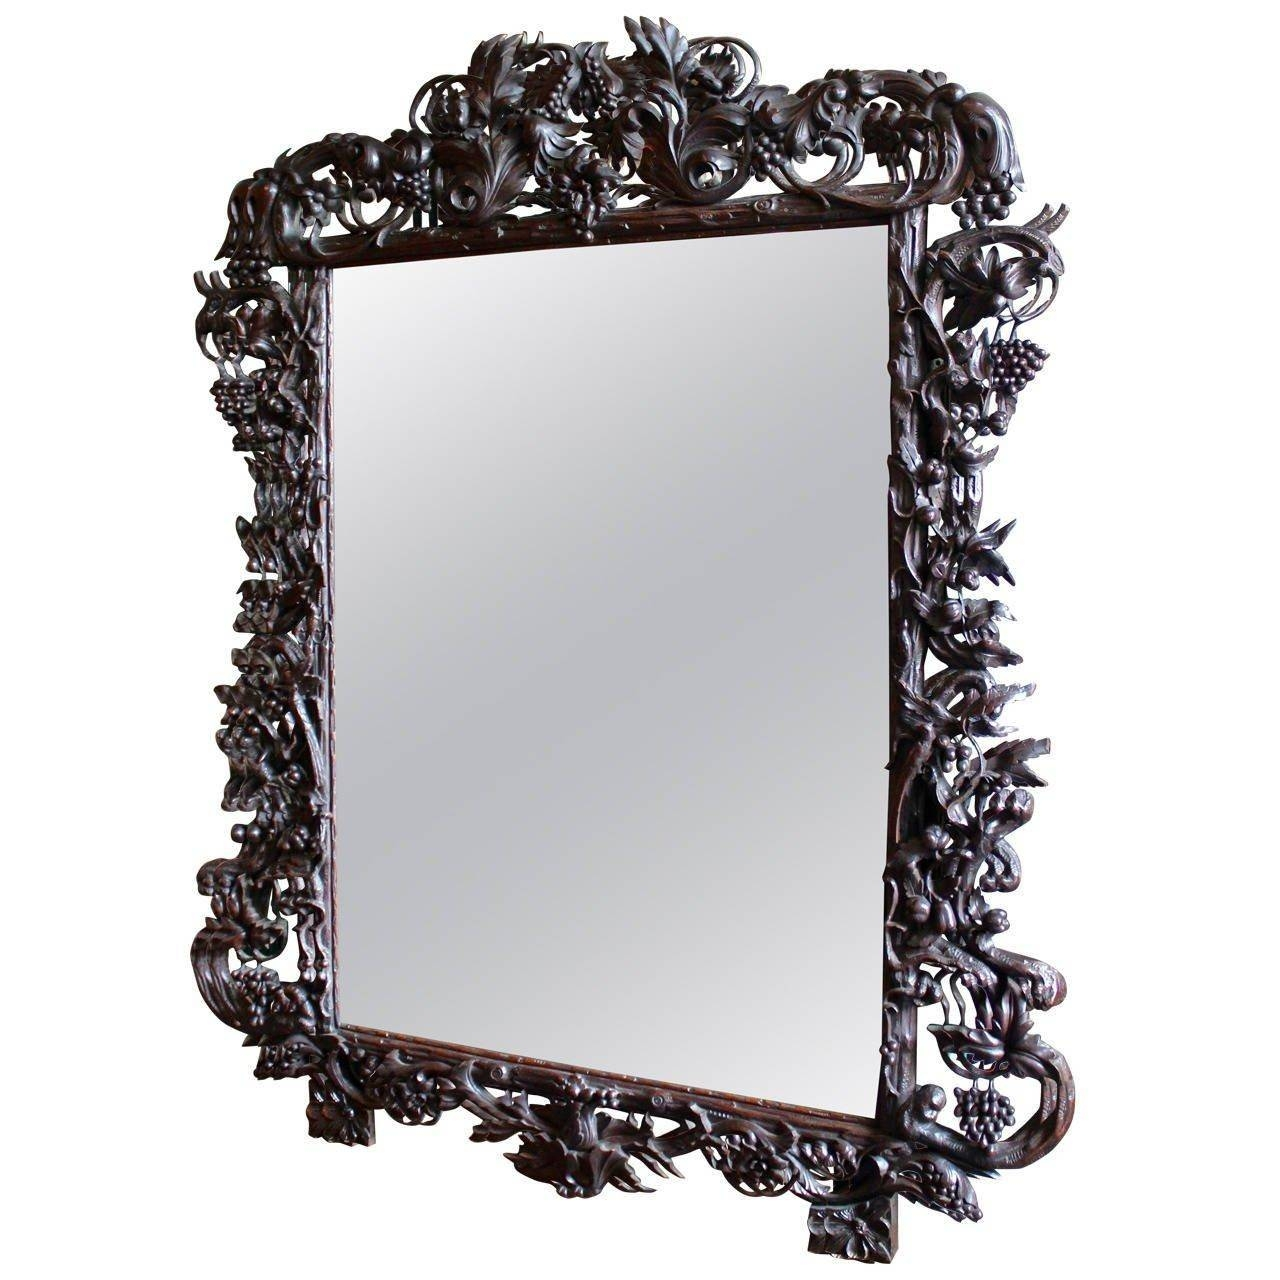 Mirror : Ornate Black Mirror Awe-Inspiring Small Black Ornate intended for Black Victorian Style Mirrors (Image 8 of 15)